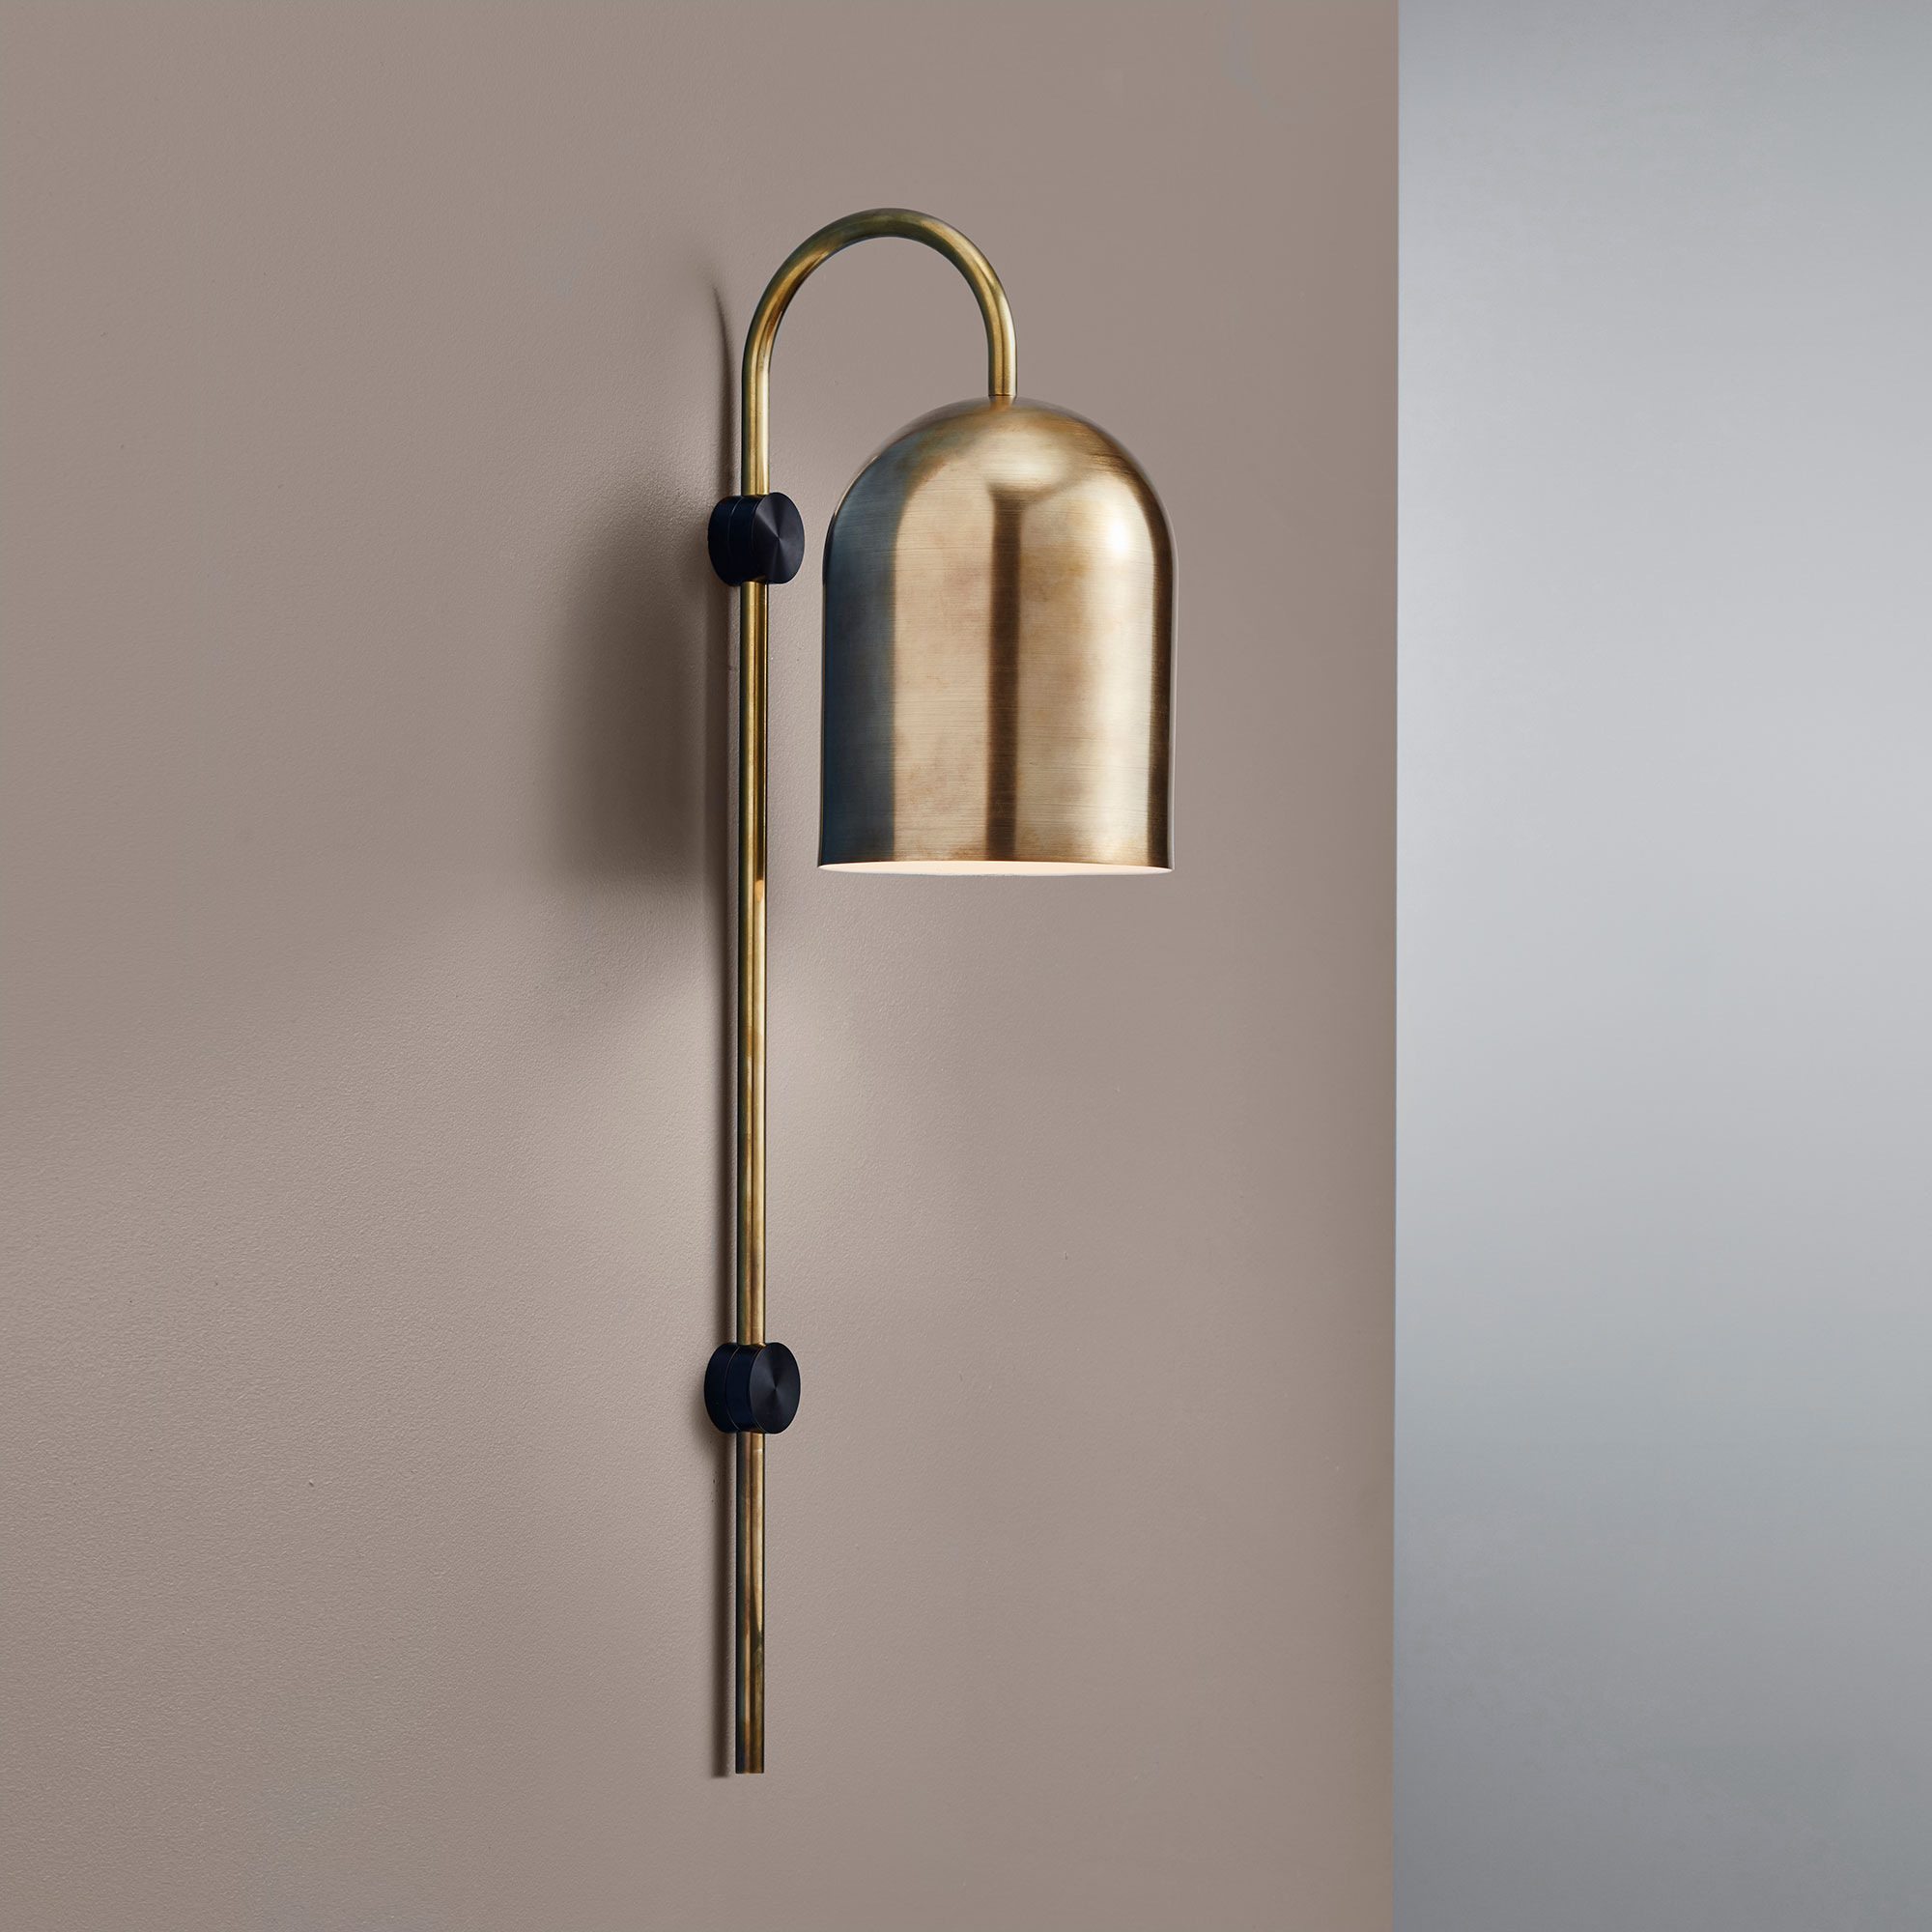 Duomo-Stem-Wall-Light-Brass-grey.jpg